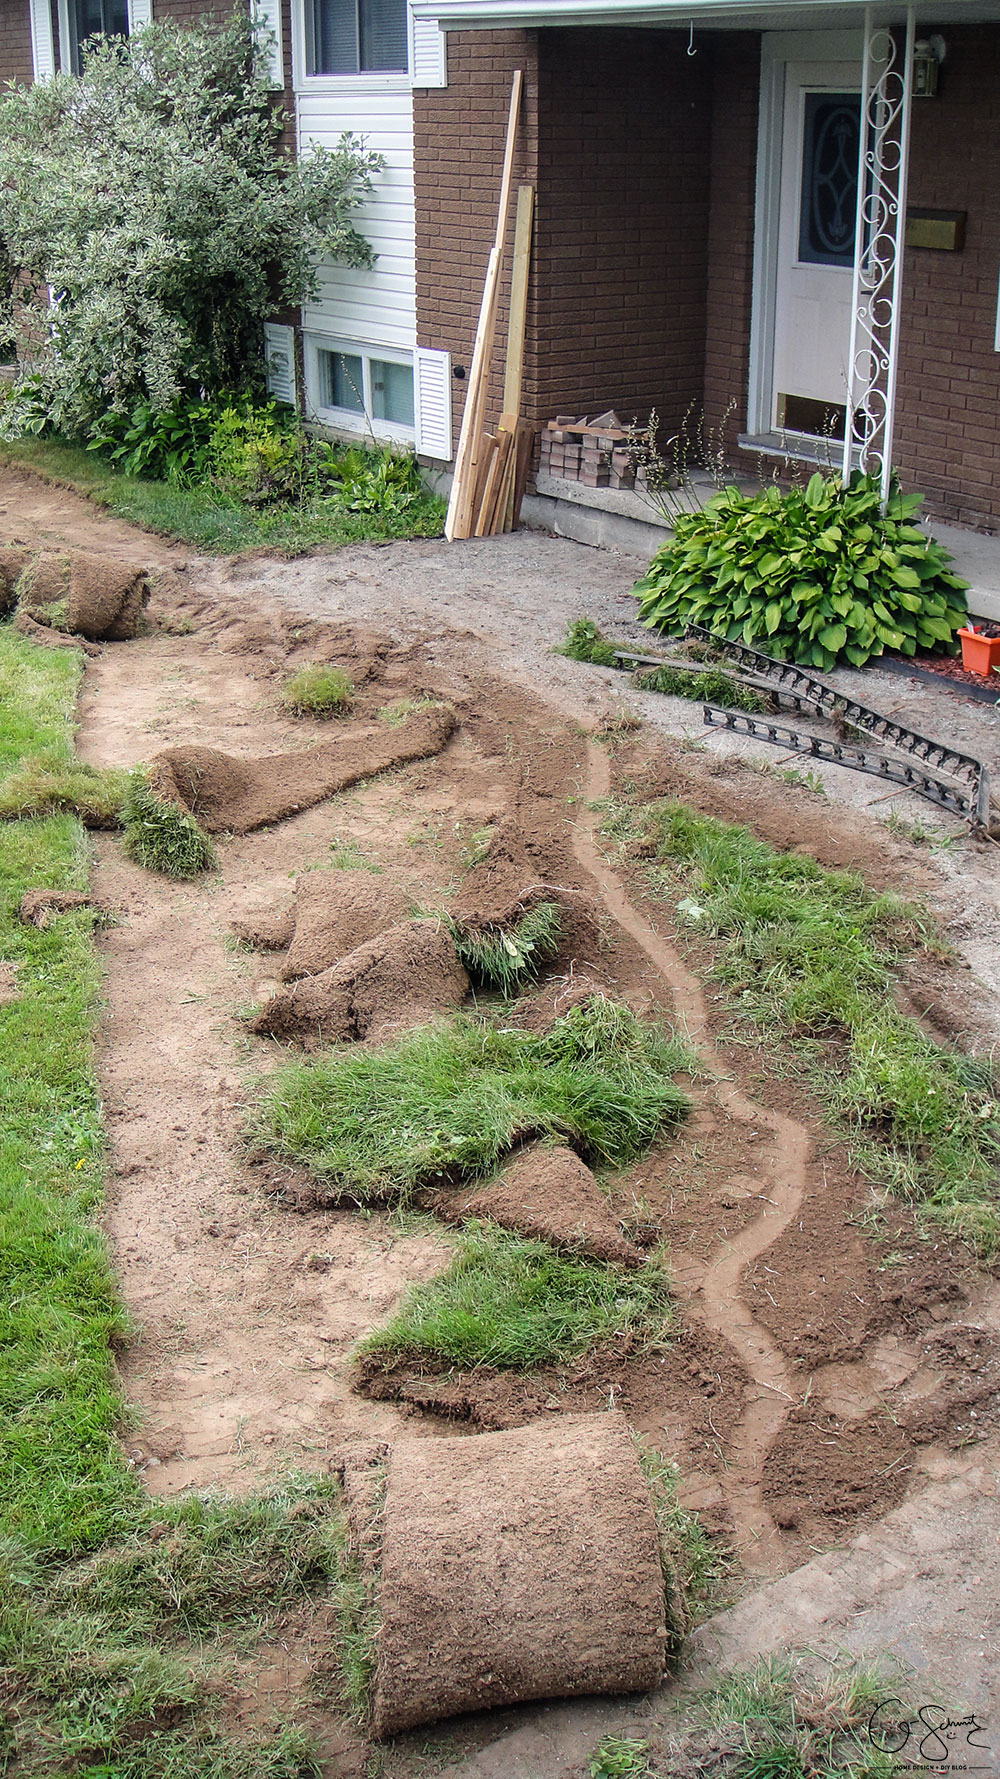 The second step for our DIY Project Walkway this summer – removing turf / sod and grass to make room for landscaping!